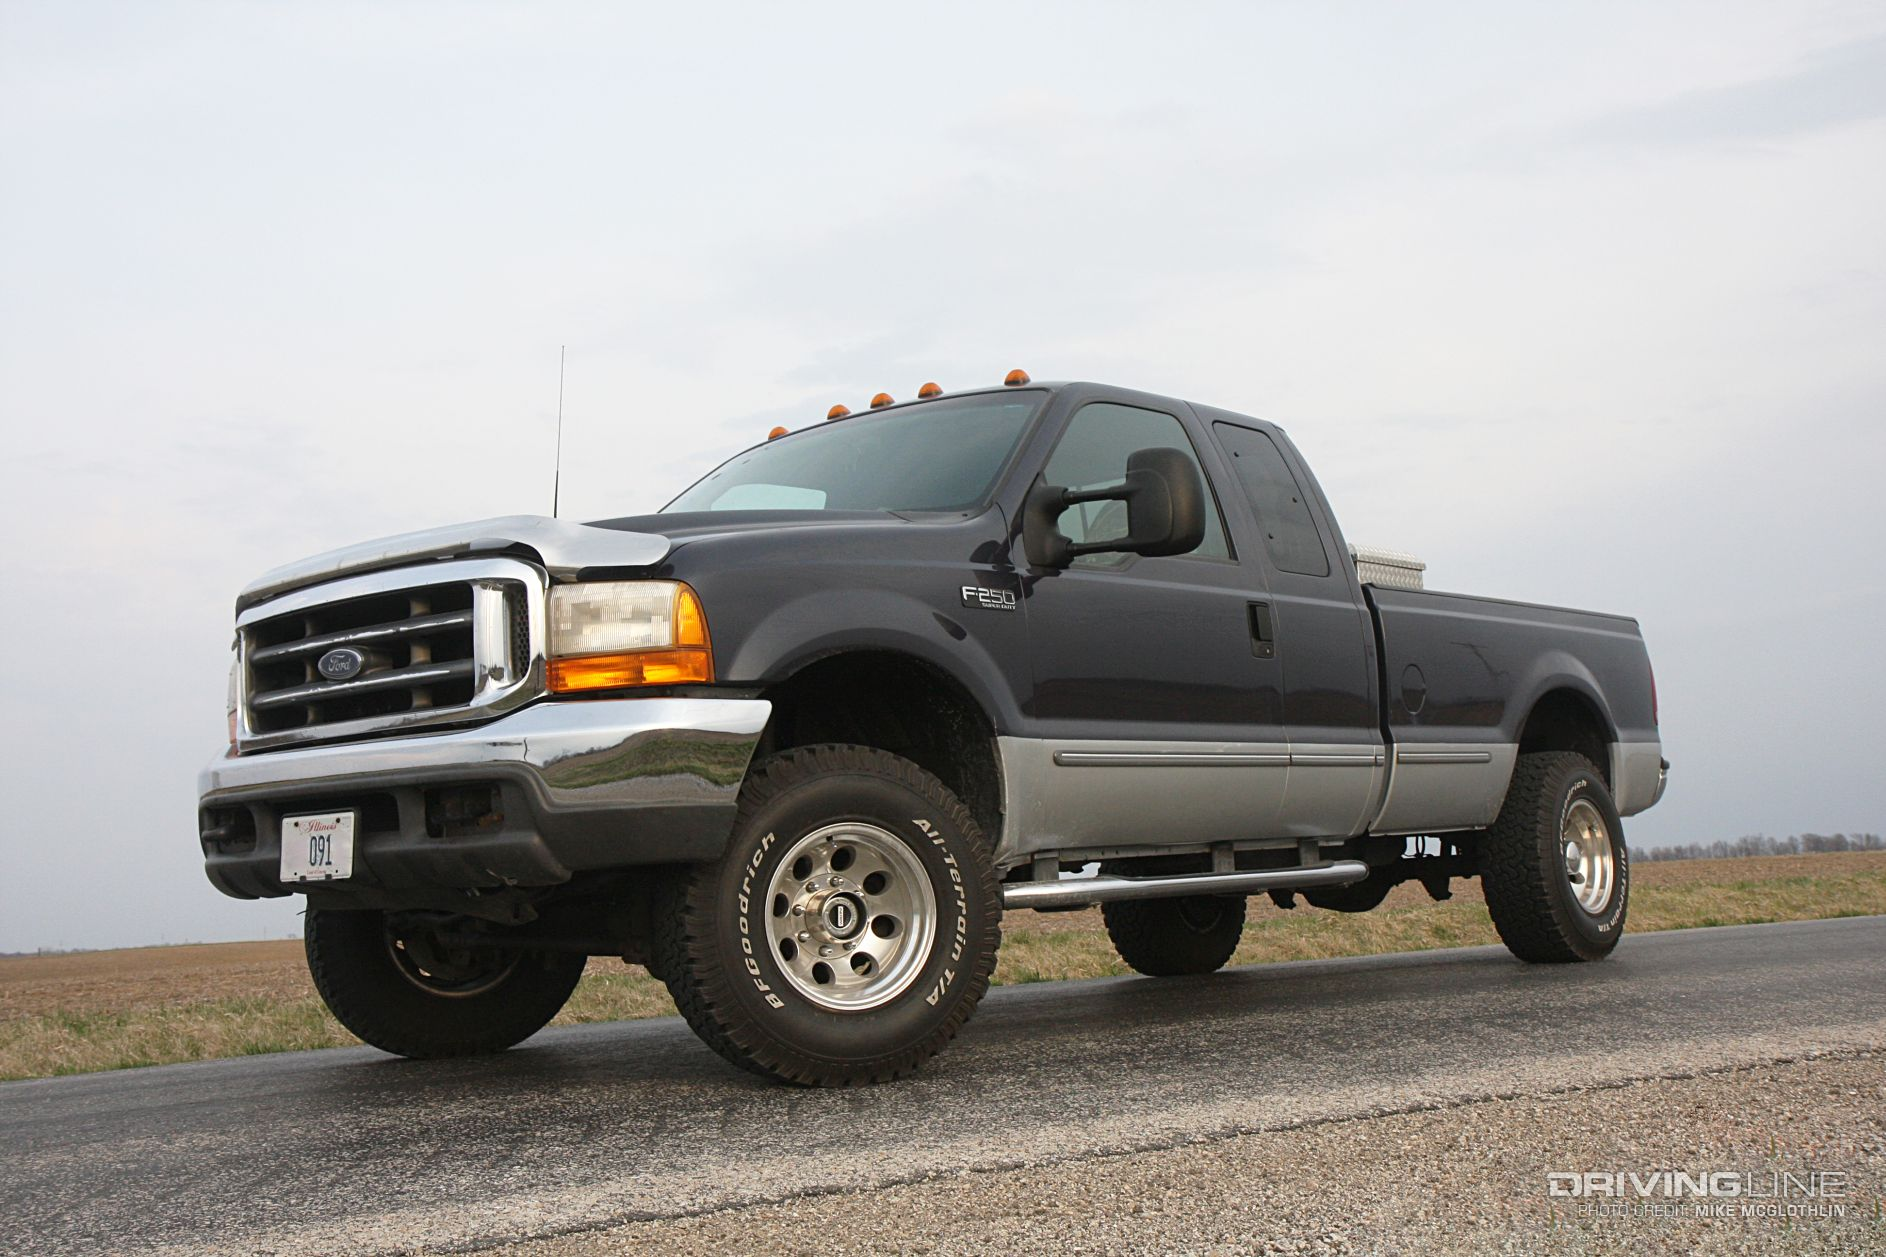 2005 6.0 powerstroke repair manual